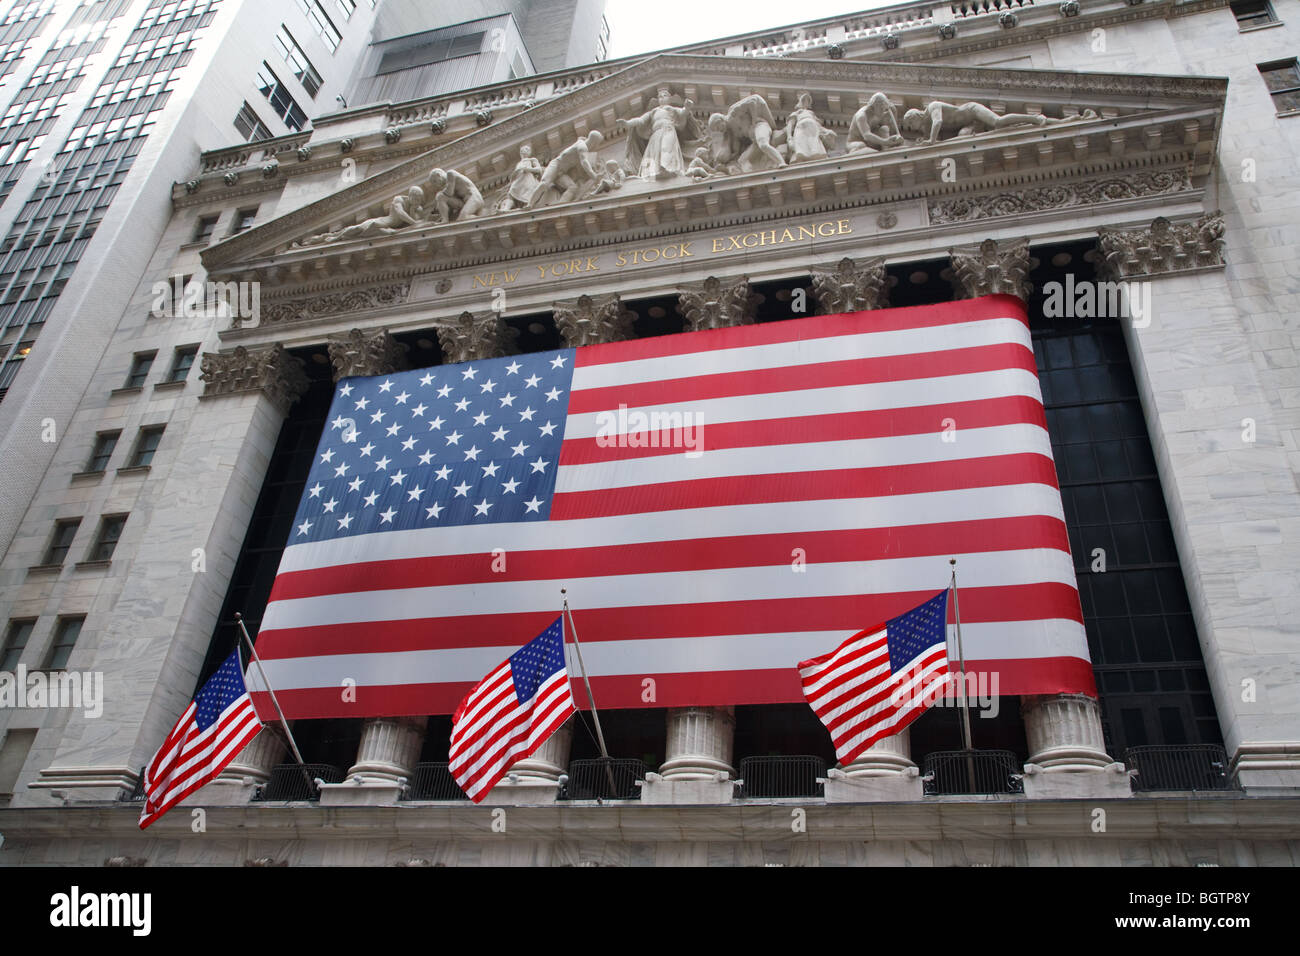 The American flag on the side of New York Exchange building in Wall Street, New York City, USA - Stock Image